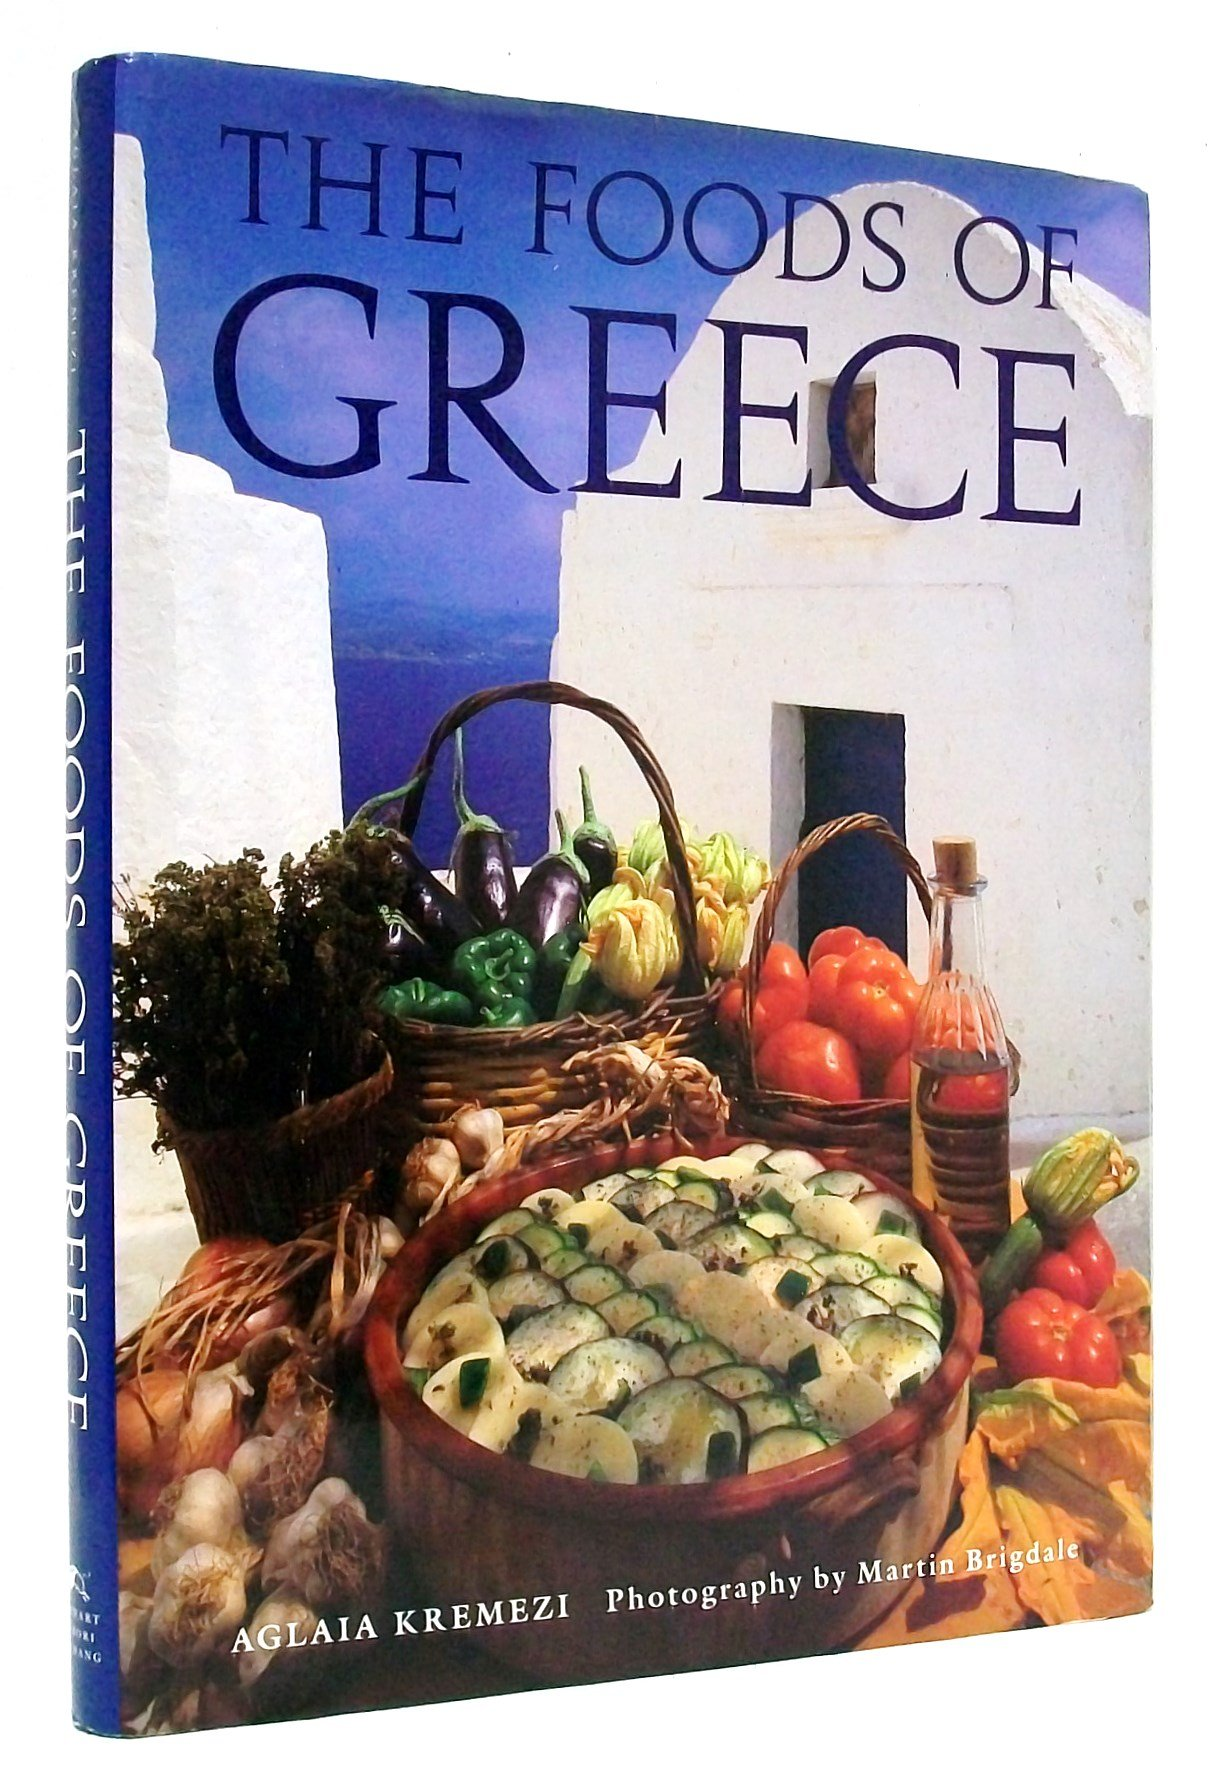 The Foods of Greece Hardcover – September 15, 1993